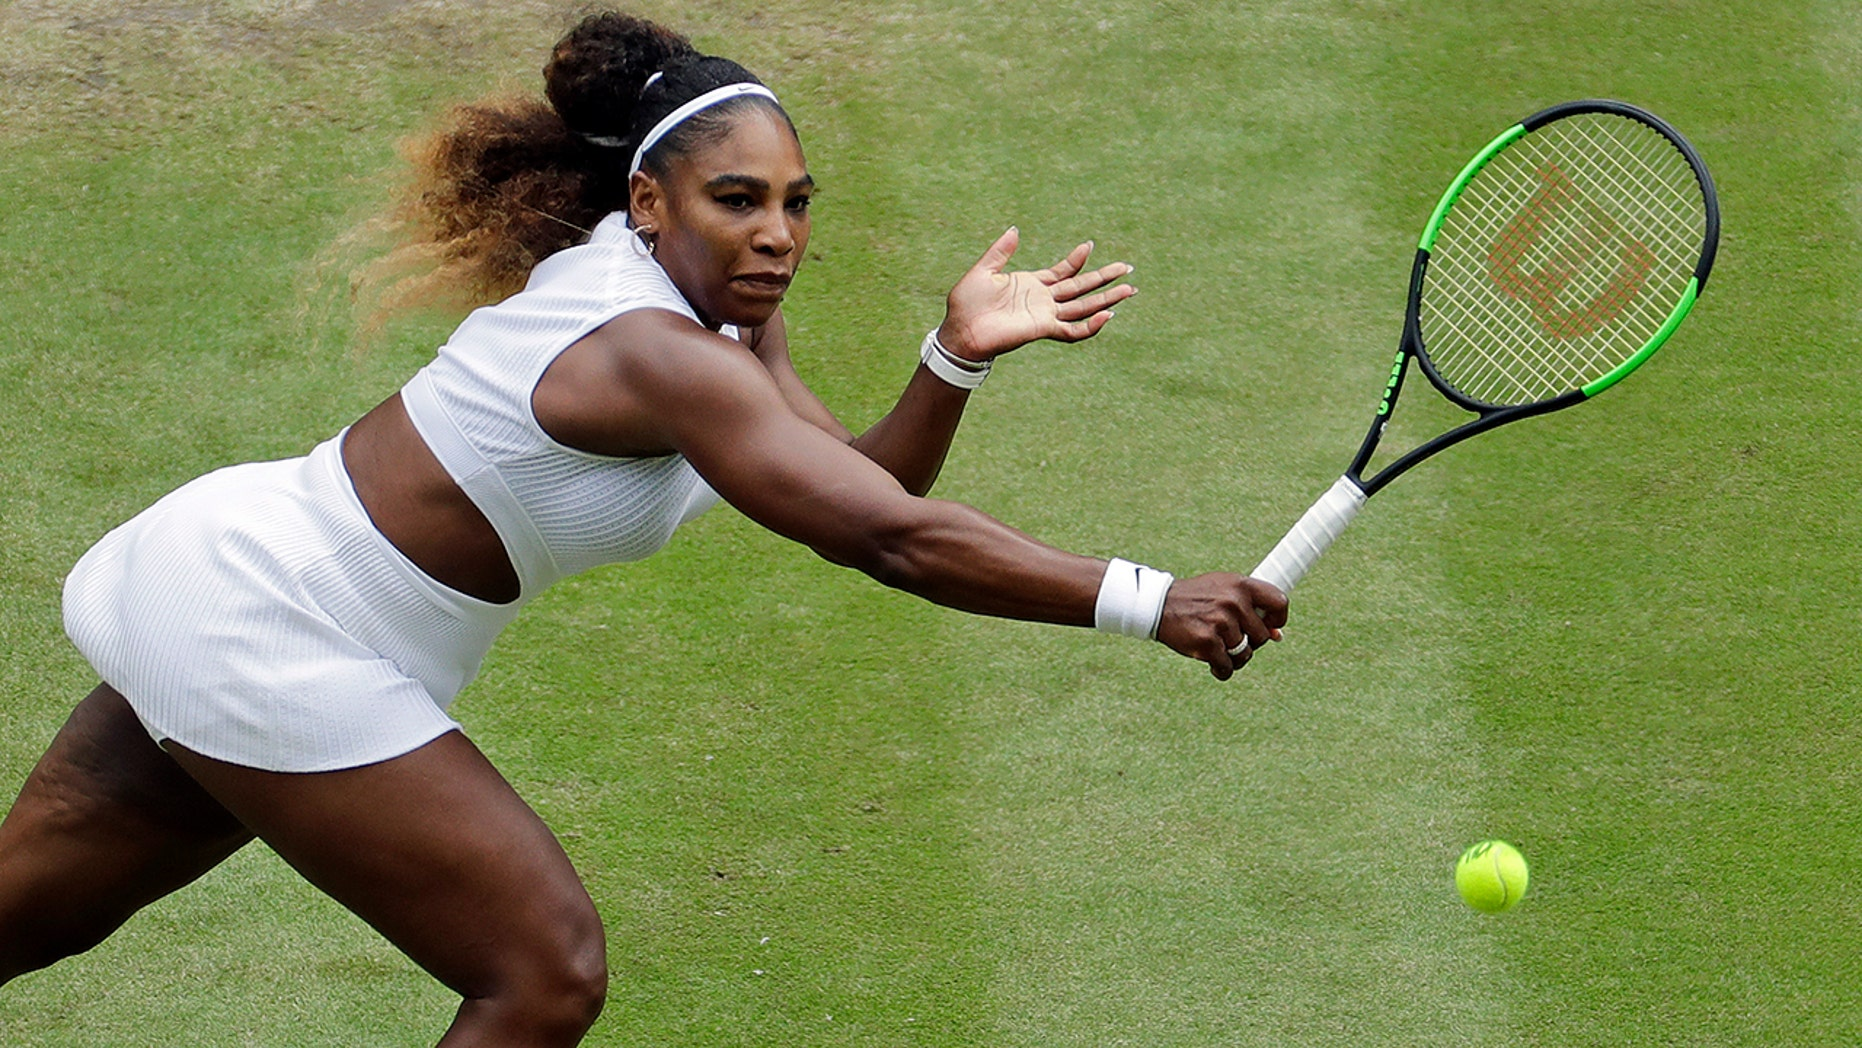 United States Serena Williams returns to United States Alison Riske in a Women's quarterfinal singles match on day eight of the Wimbledon Tennis Championships in London Tuesday